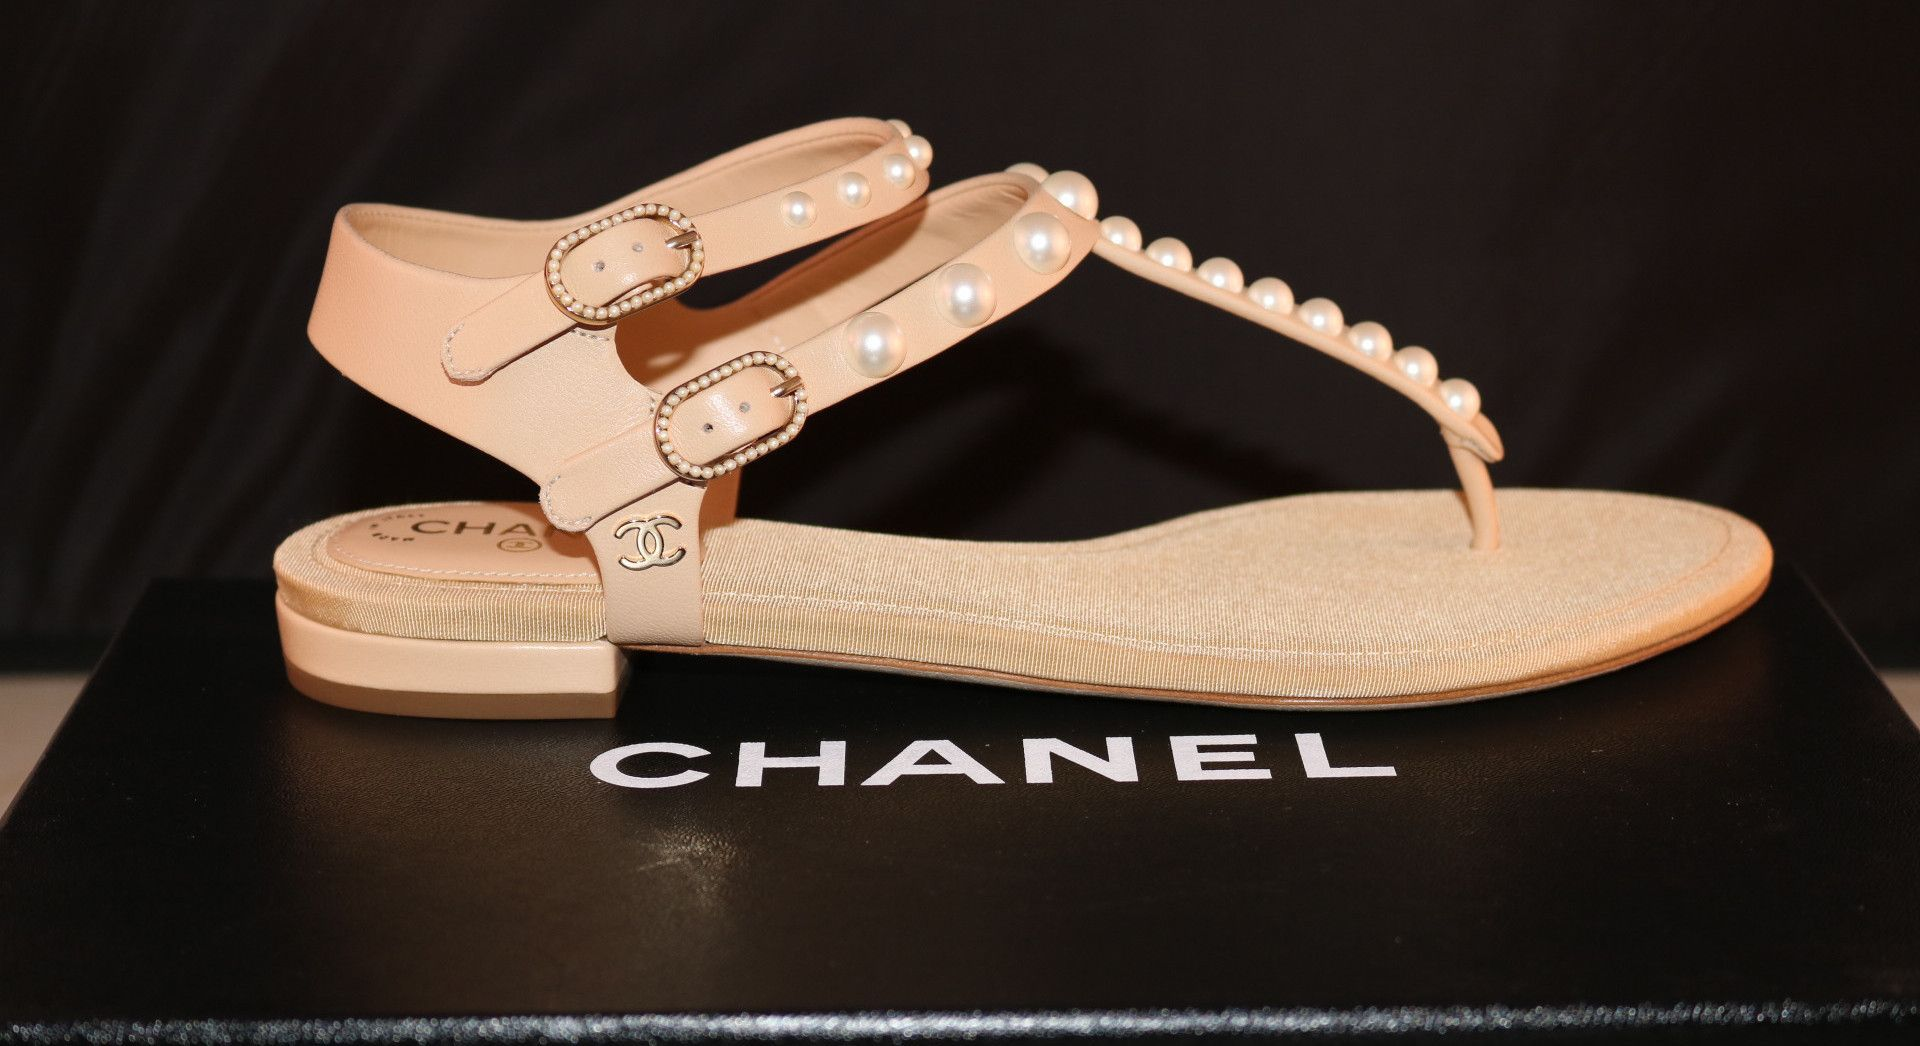 2016 CHANEL CC LOGO BEIGE LEATHER PEARL PEARLS FLATS THONG FLAT SANDALS  SHOES